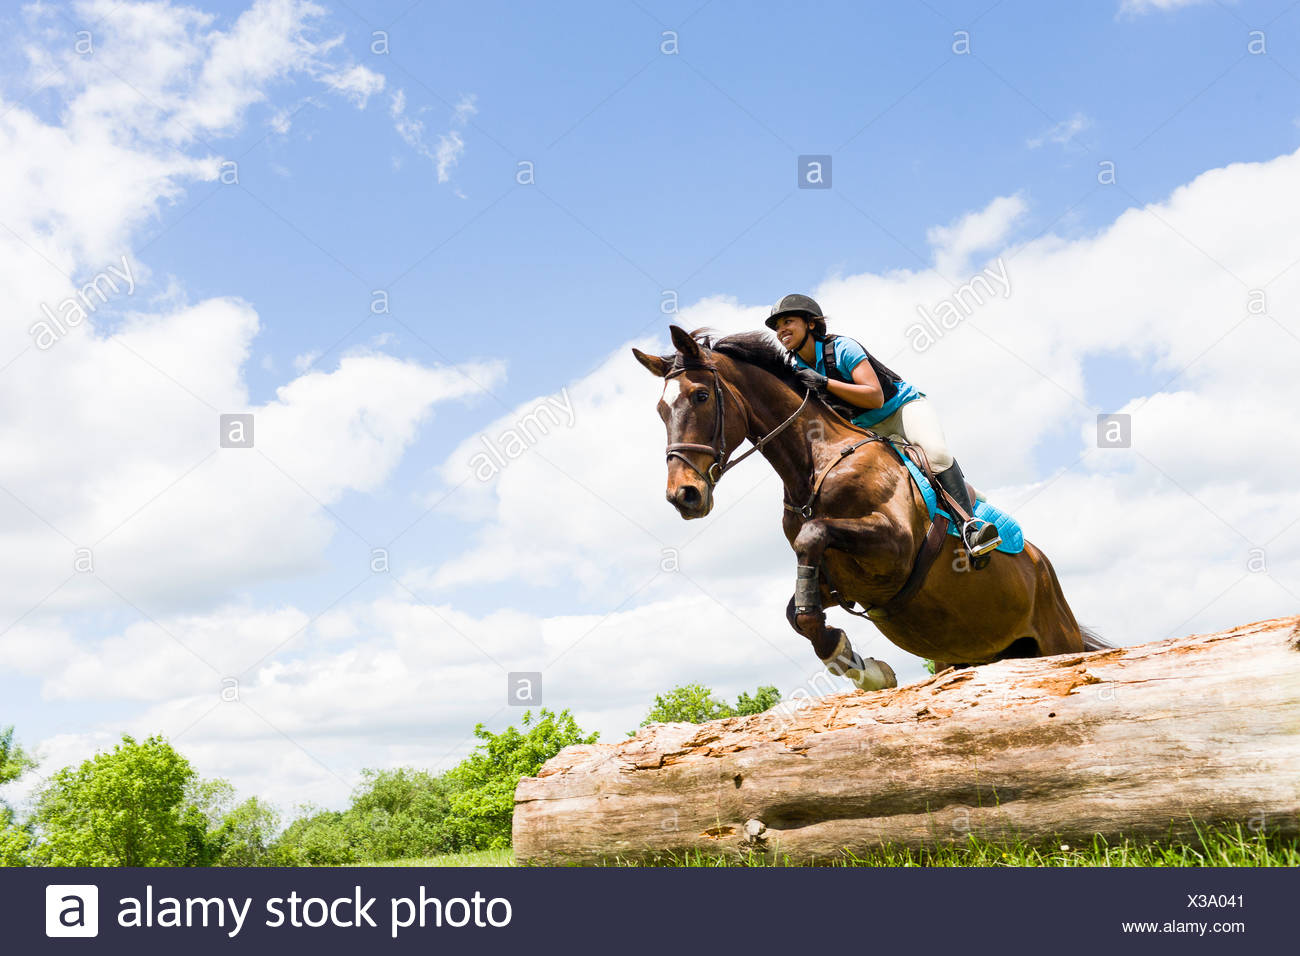 Horse rider jumping on horse - Stock Image